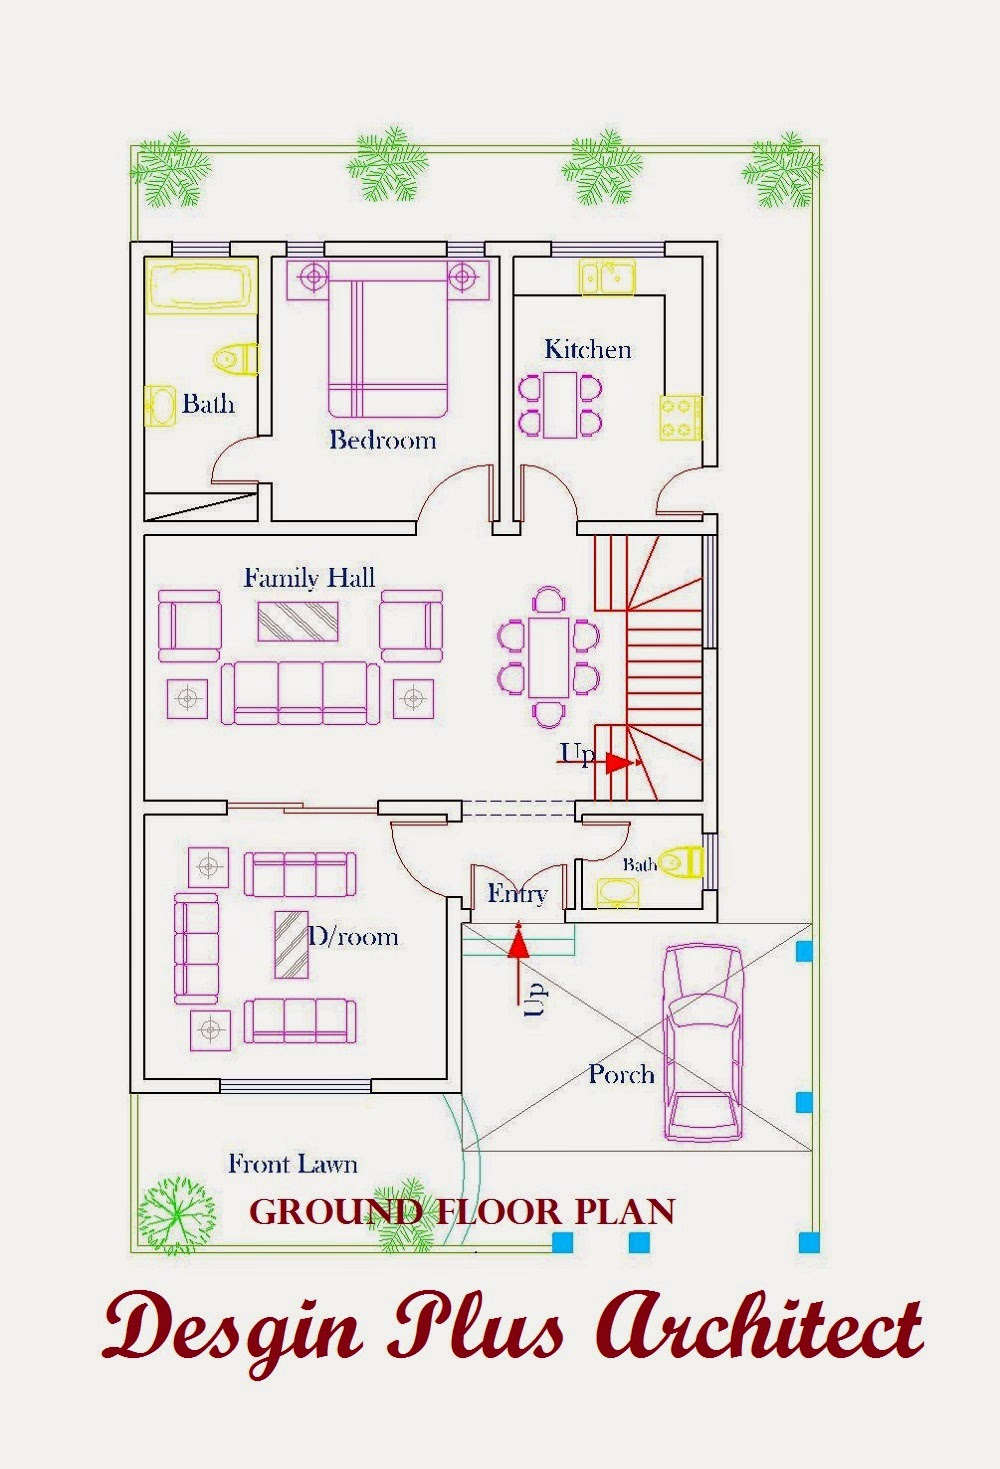 Home plans in pakistan home decor architect designer for House designer plan